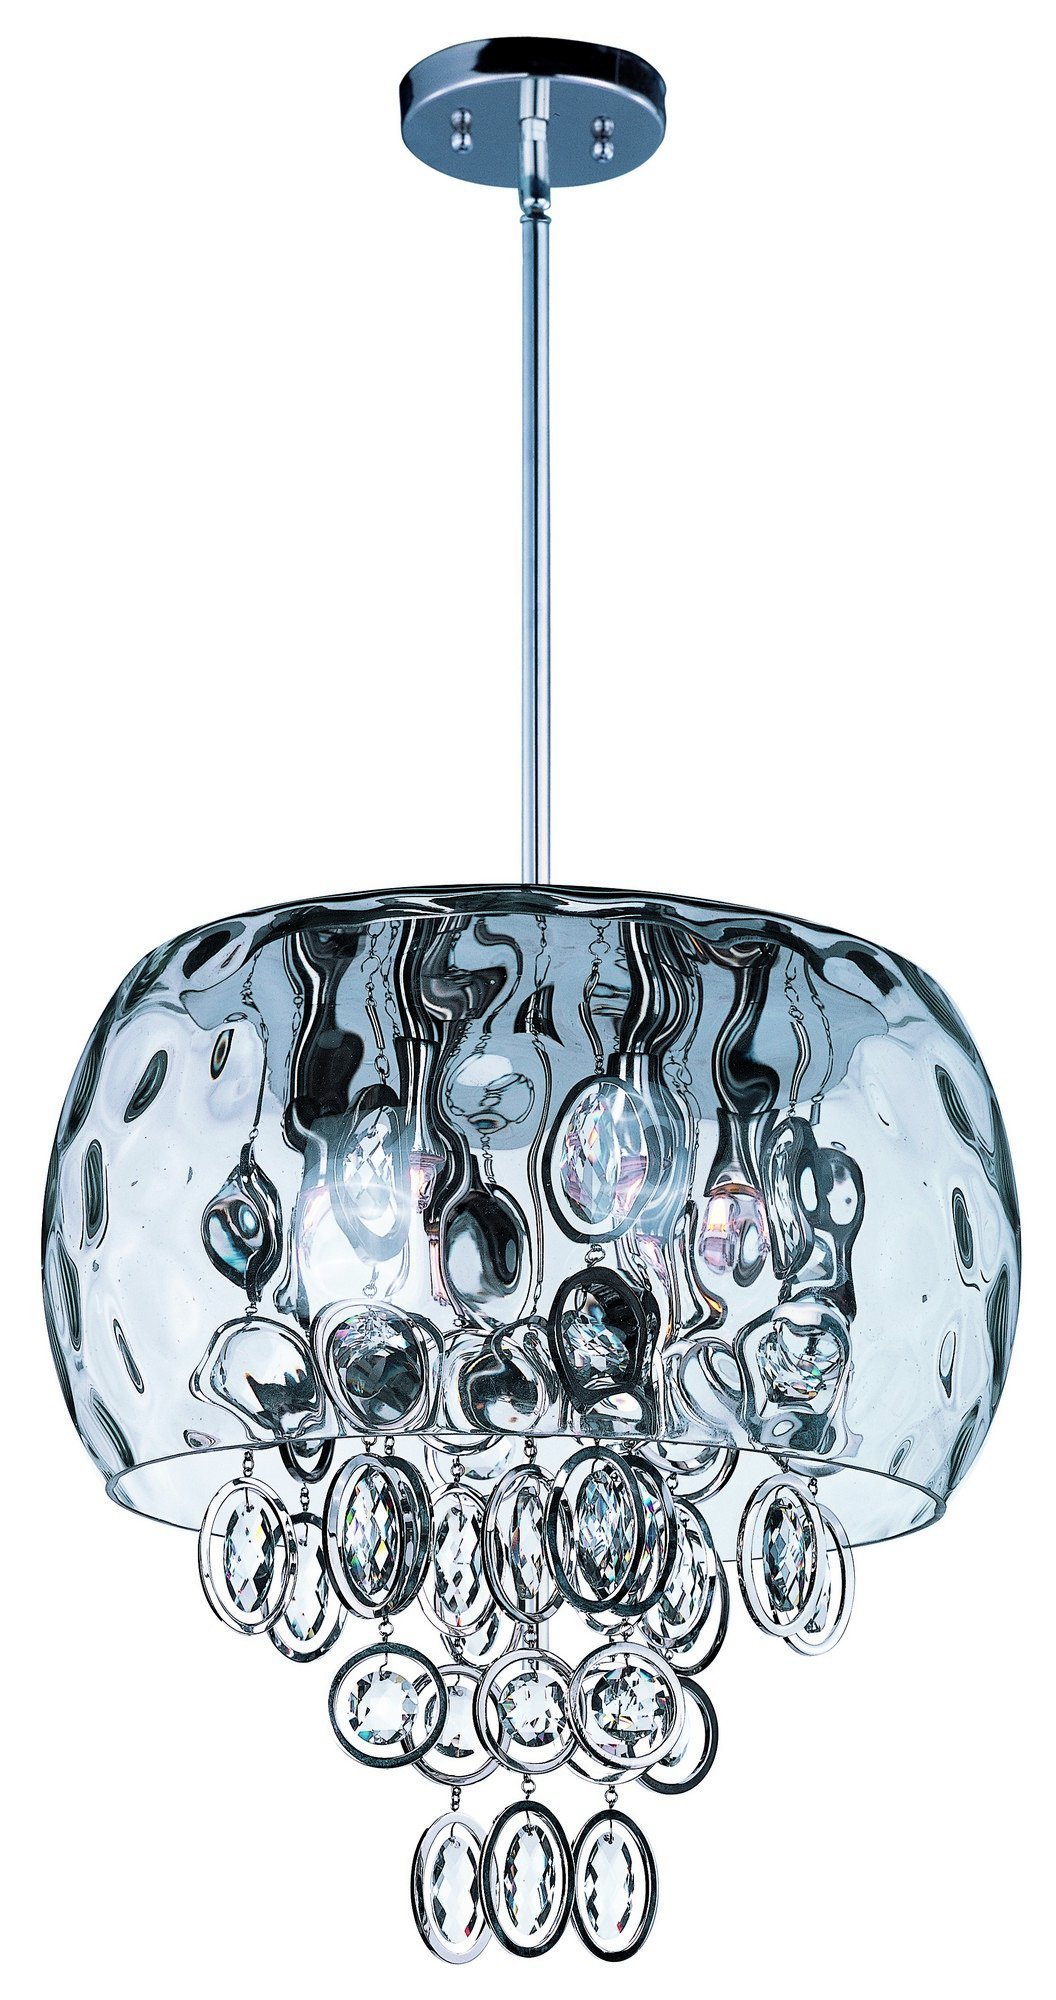 Maxim 21474WGPN Ripple 6-Light Pendant, Polished Nickel Finish, Water Glass Glass, G9 Xenon Xenon Bulb , 100W Max., Dry Safety Rating, Standard Dimmable, Glass Shade Material, 1150 Rated Lumens by Maxim Lighting (Image #1)